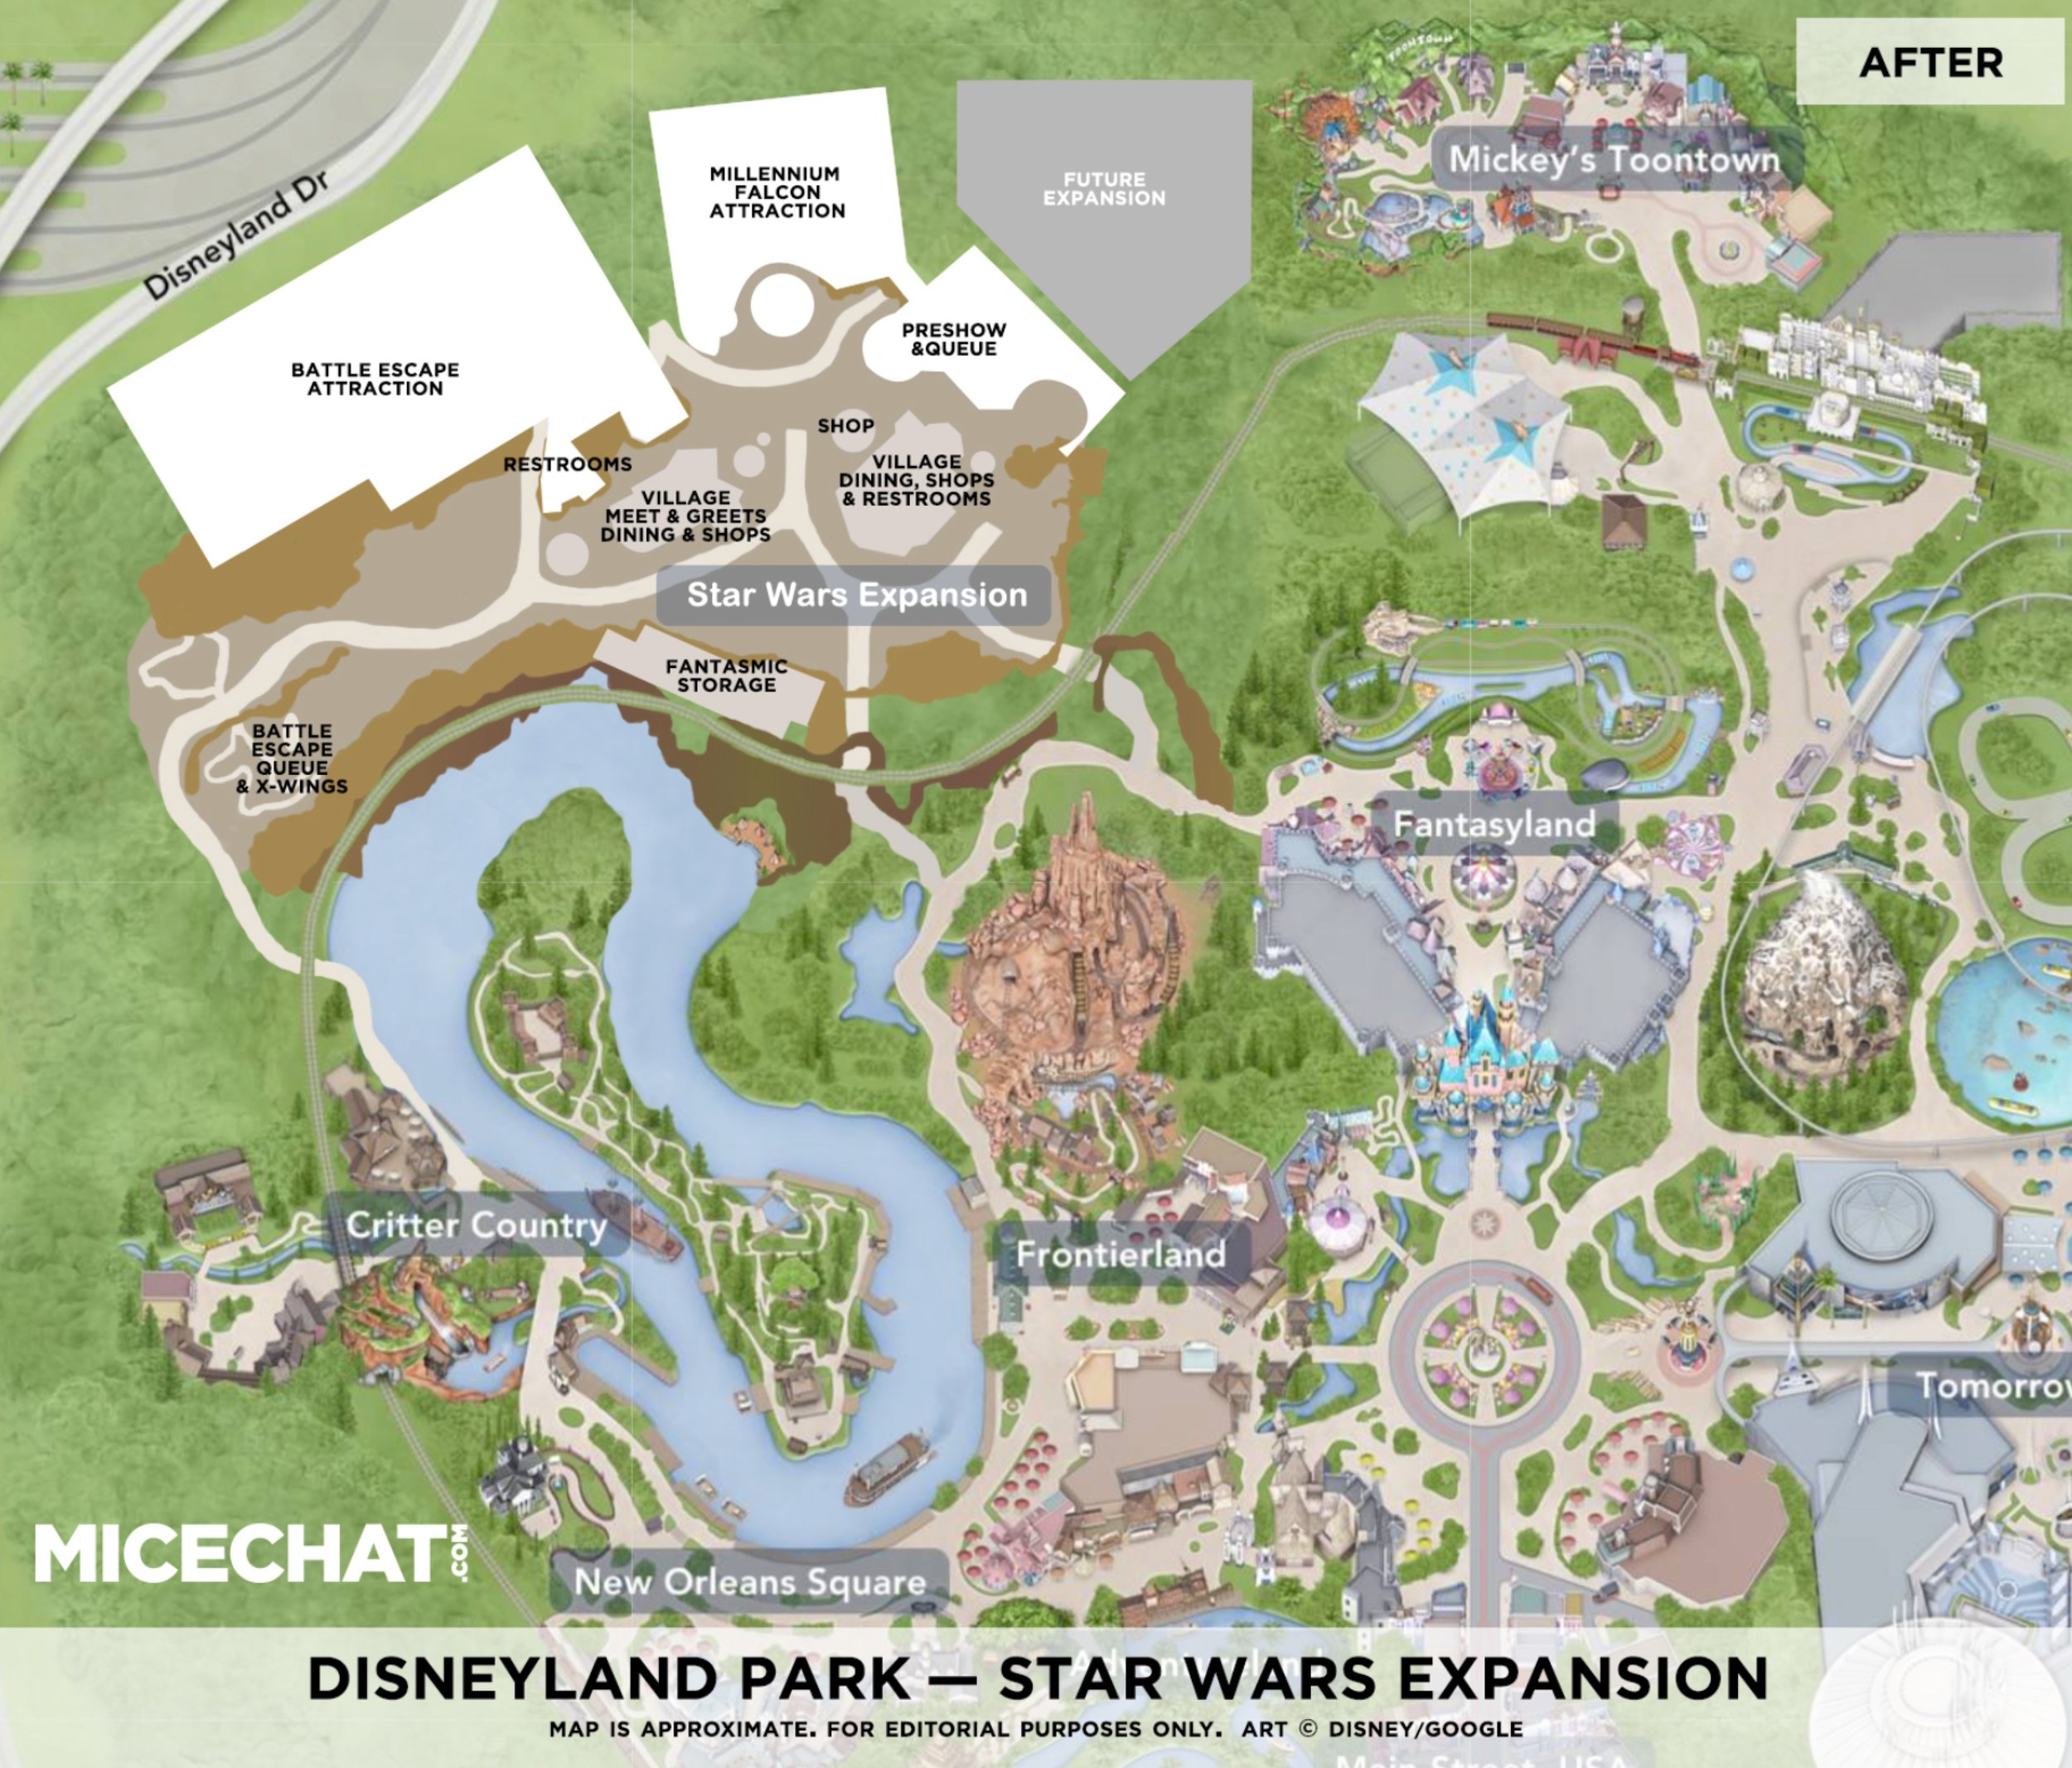 Disney Los Angeles Map.Disneyland S Star Wars Land Expansion Layout Shown In Map And New